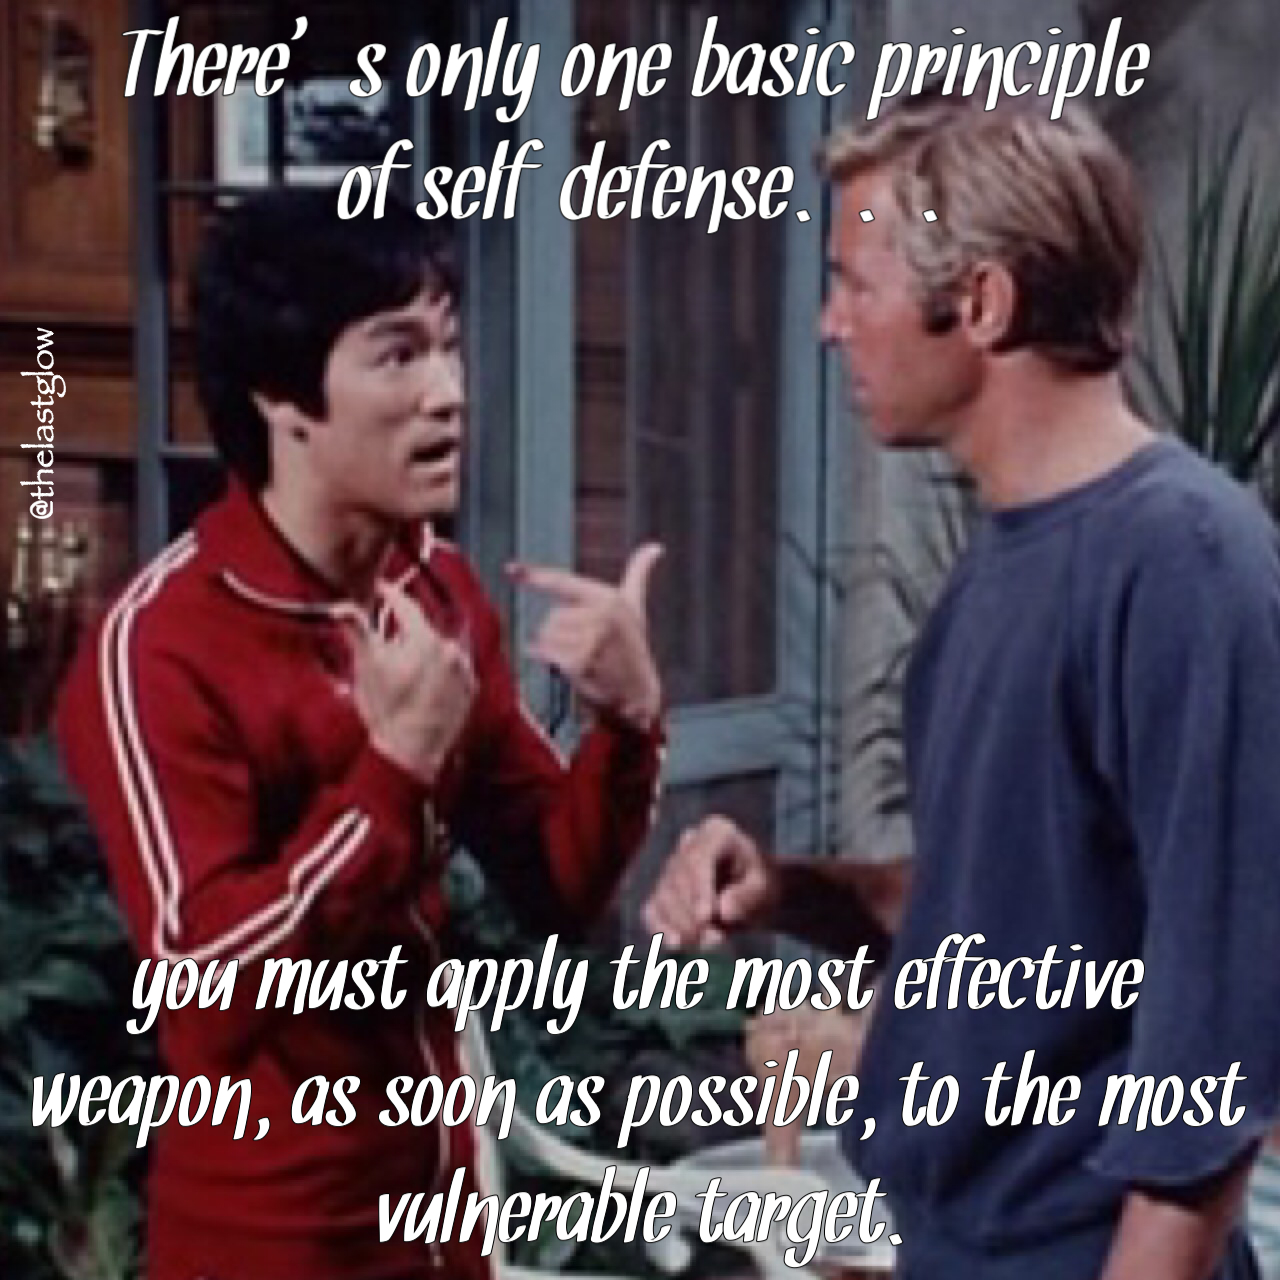 Bruce Lee Quotes On Self-Defense From